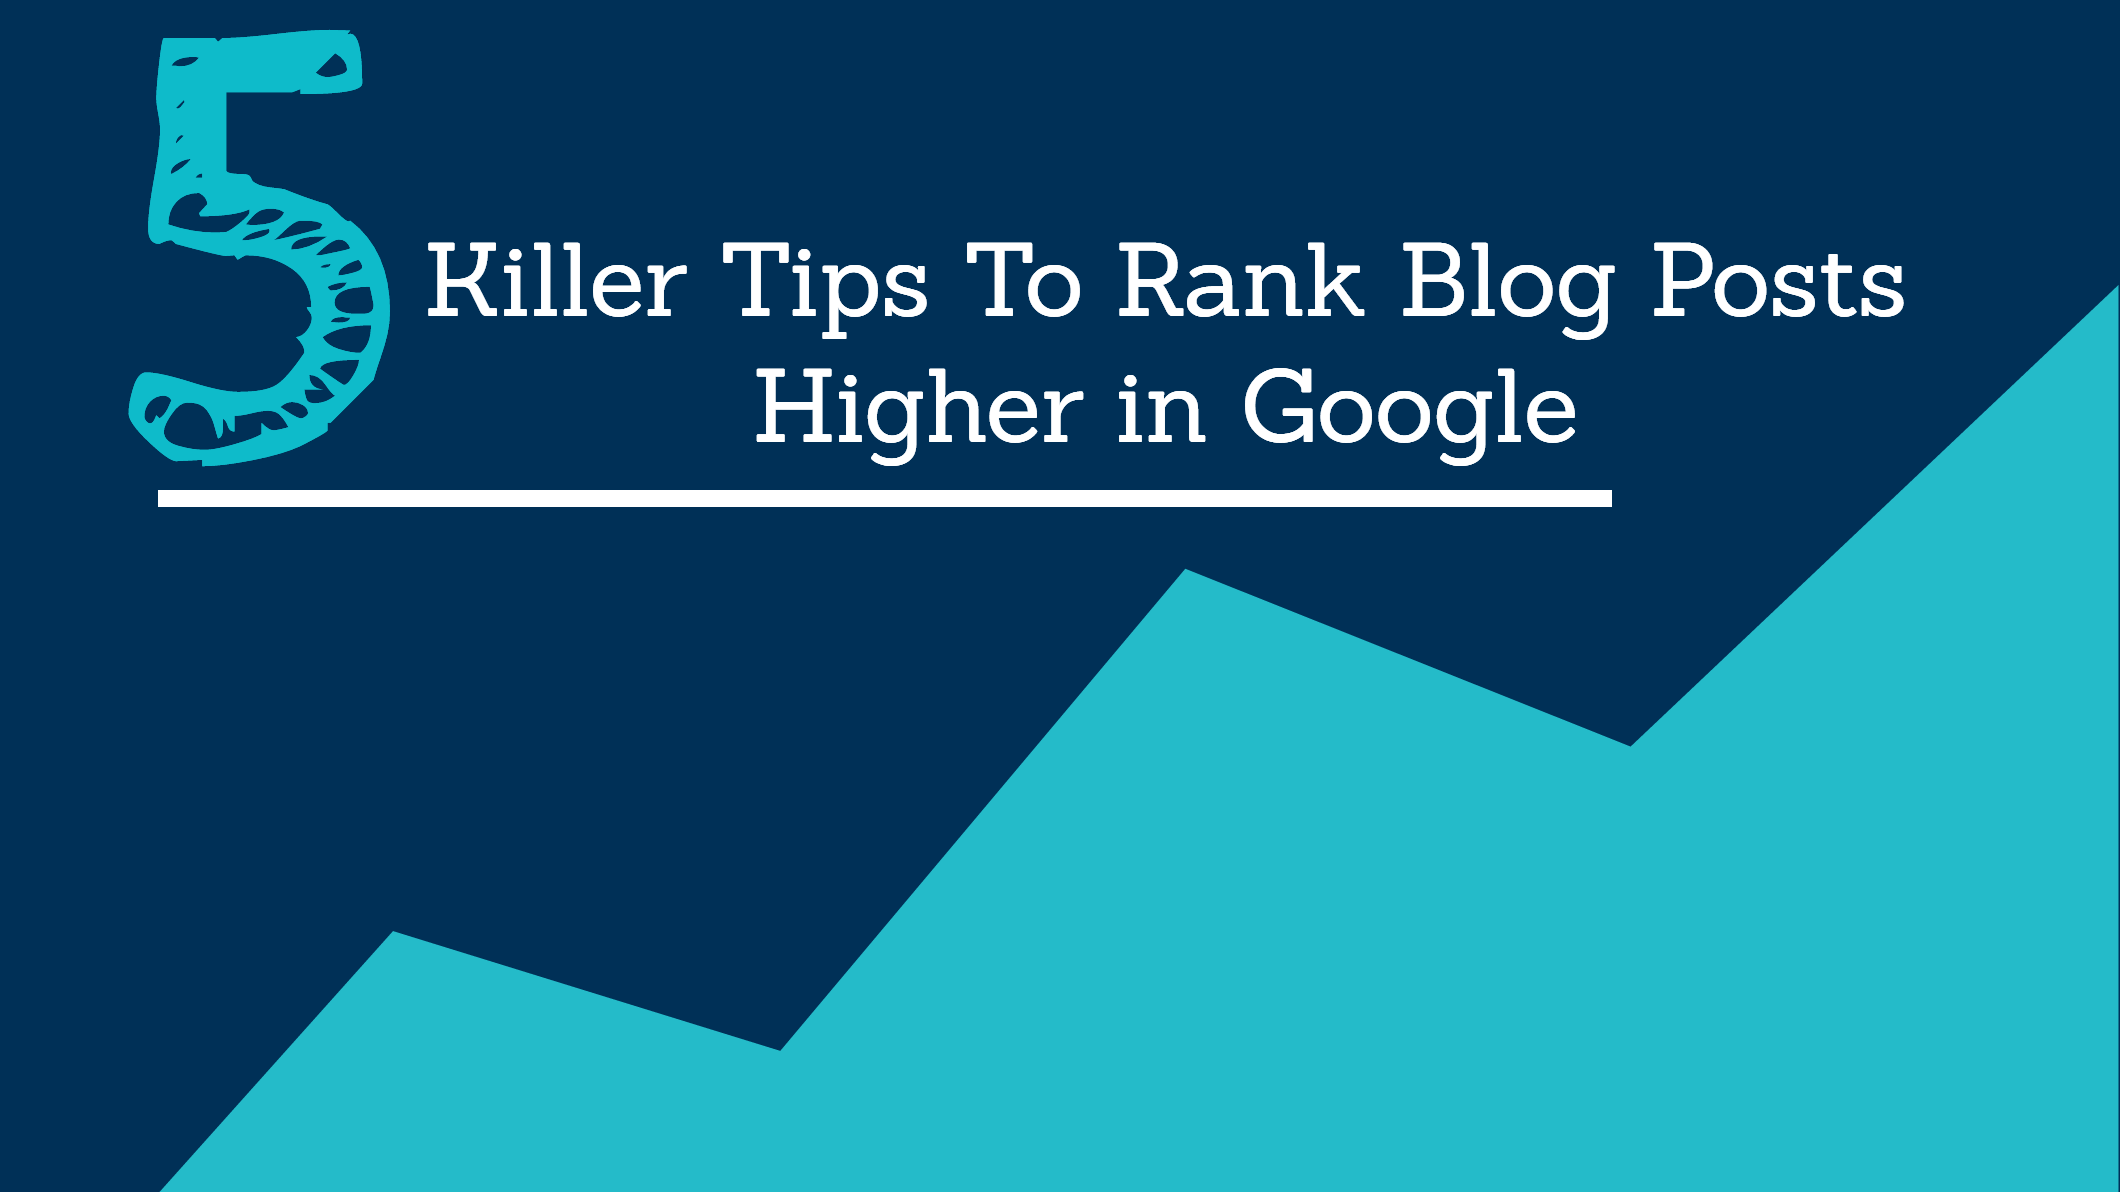 5 Killer Tips To Rank Blog Posts Higher in Google